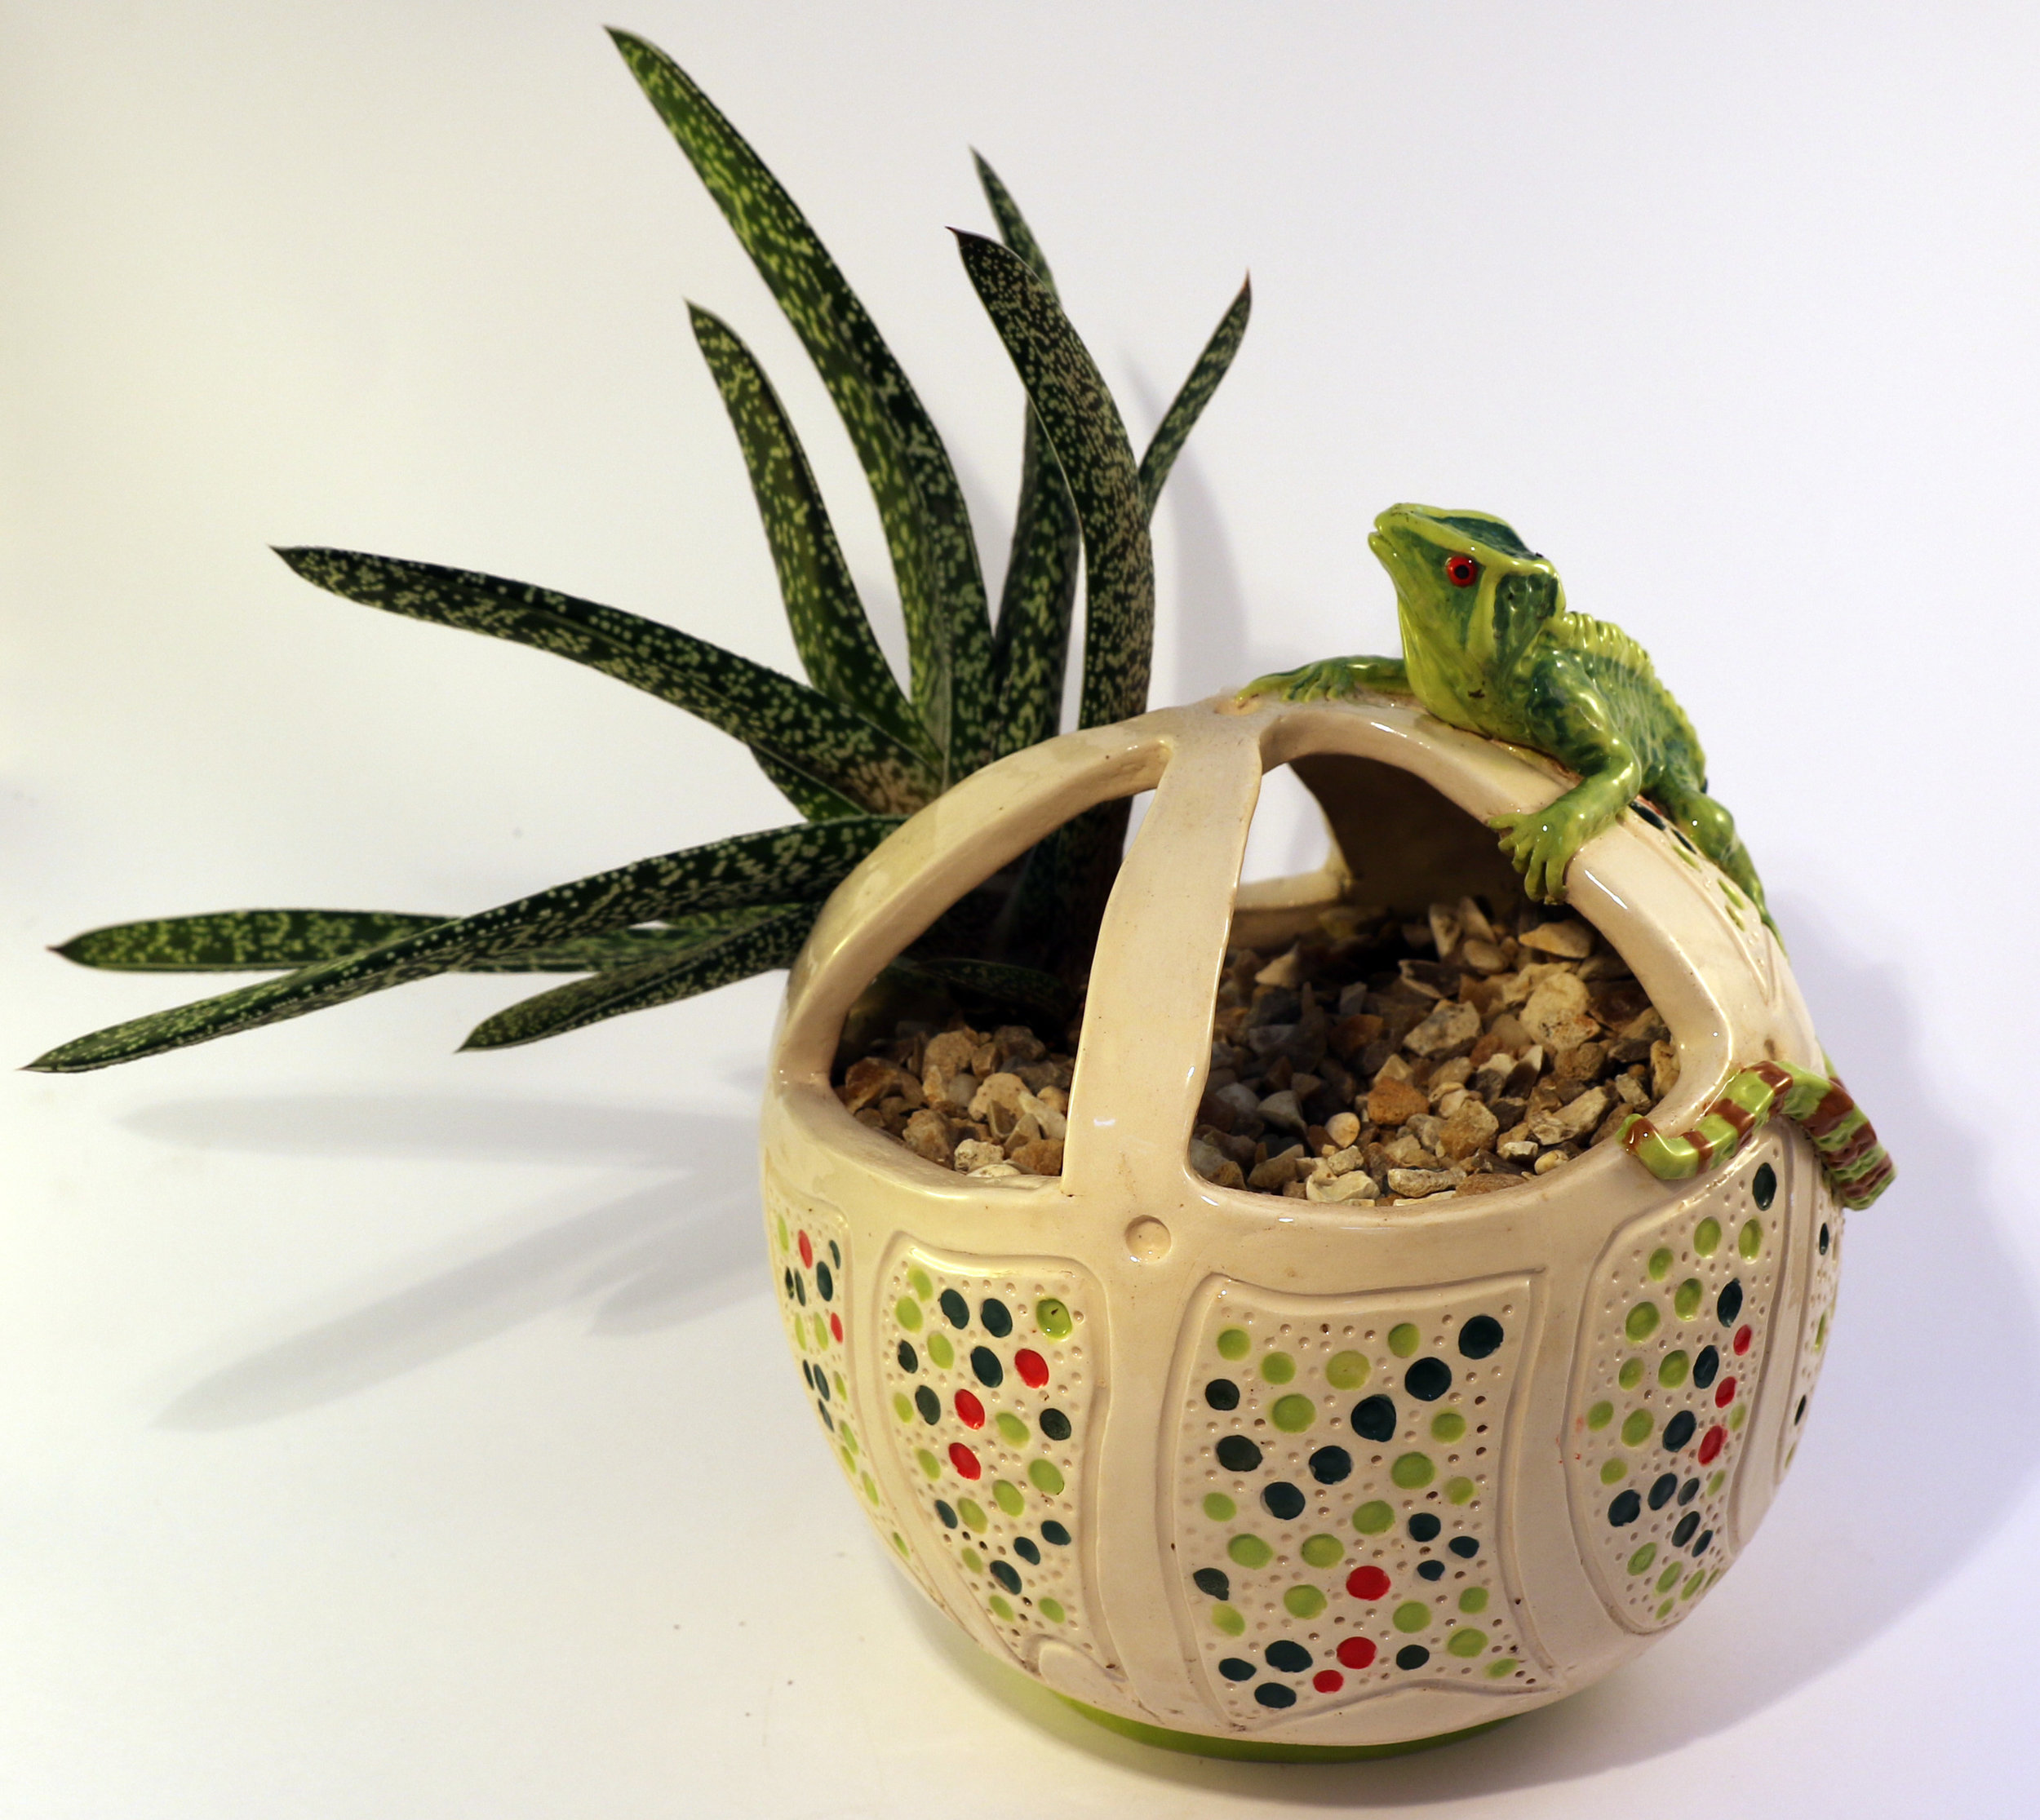 christine norris - website Lizard large planter with Aloe.jpg